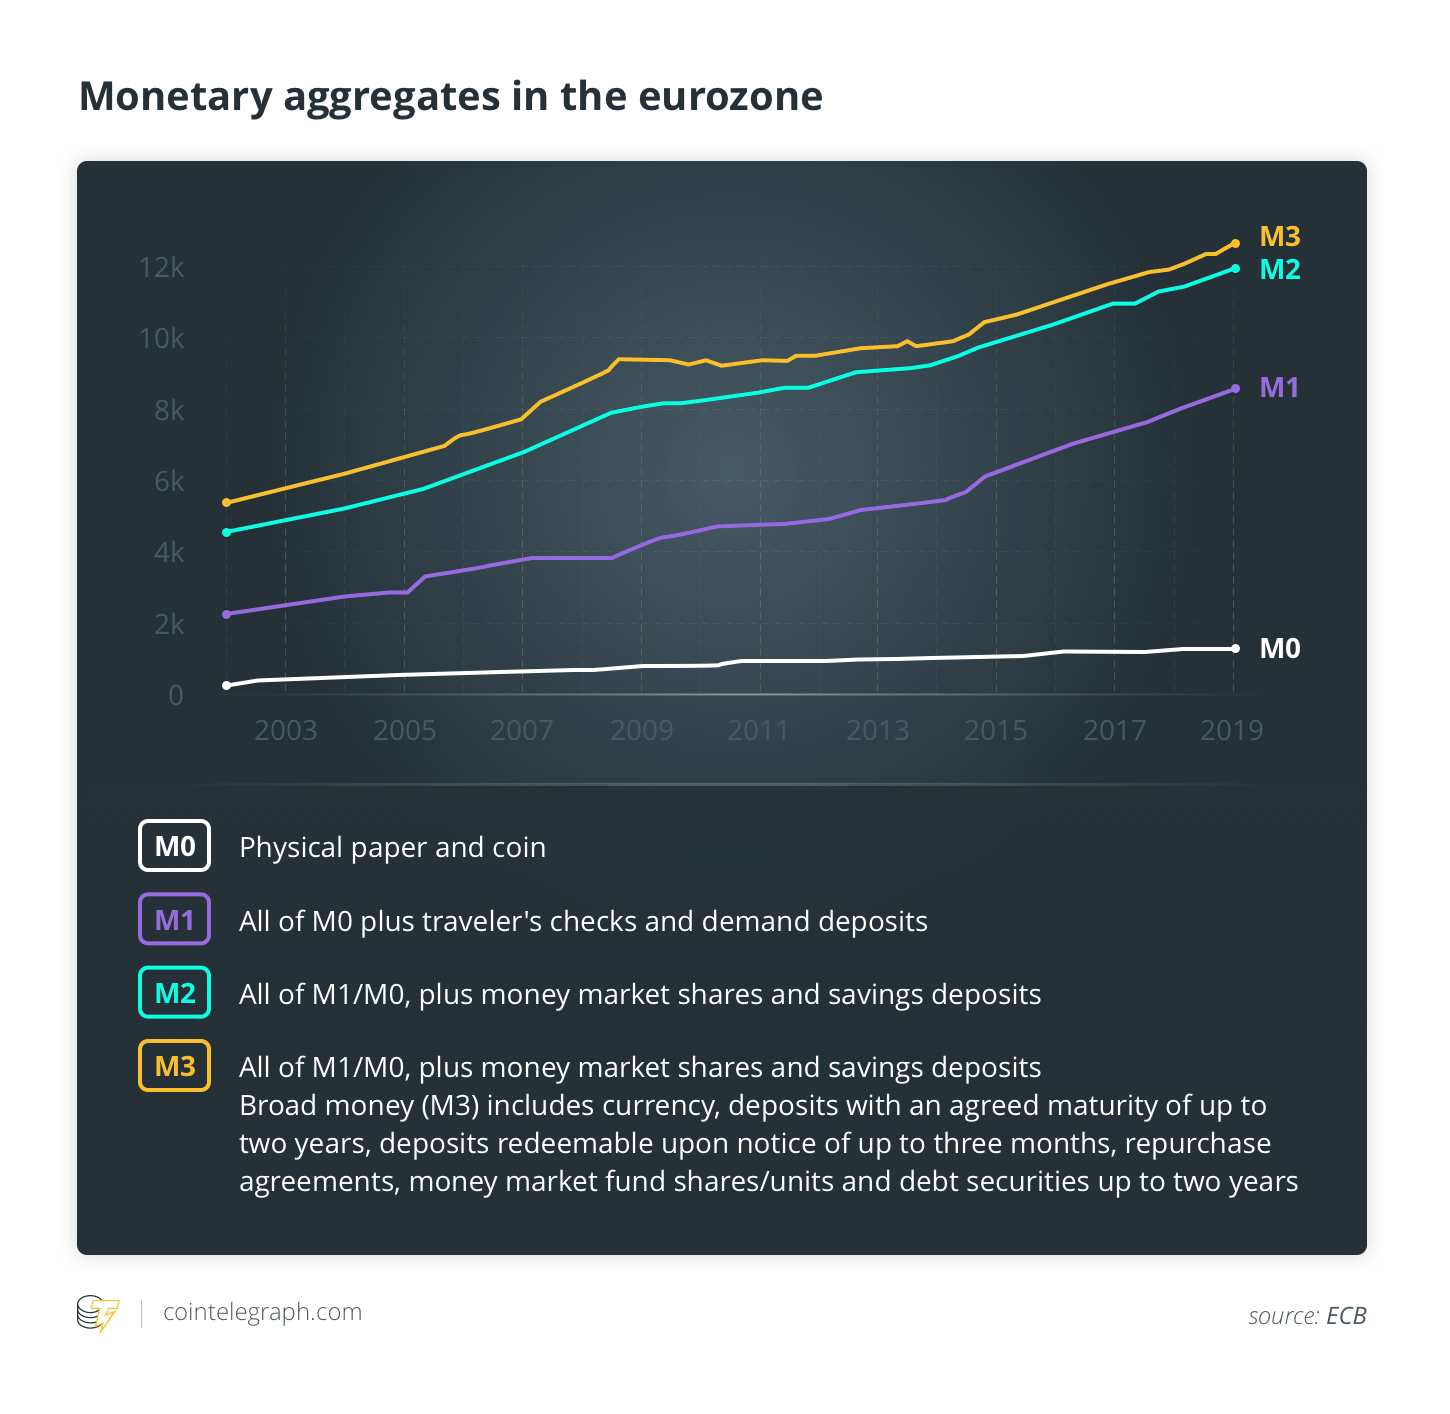 Monetary aggregates in the eurozone